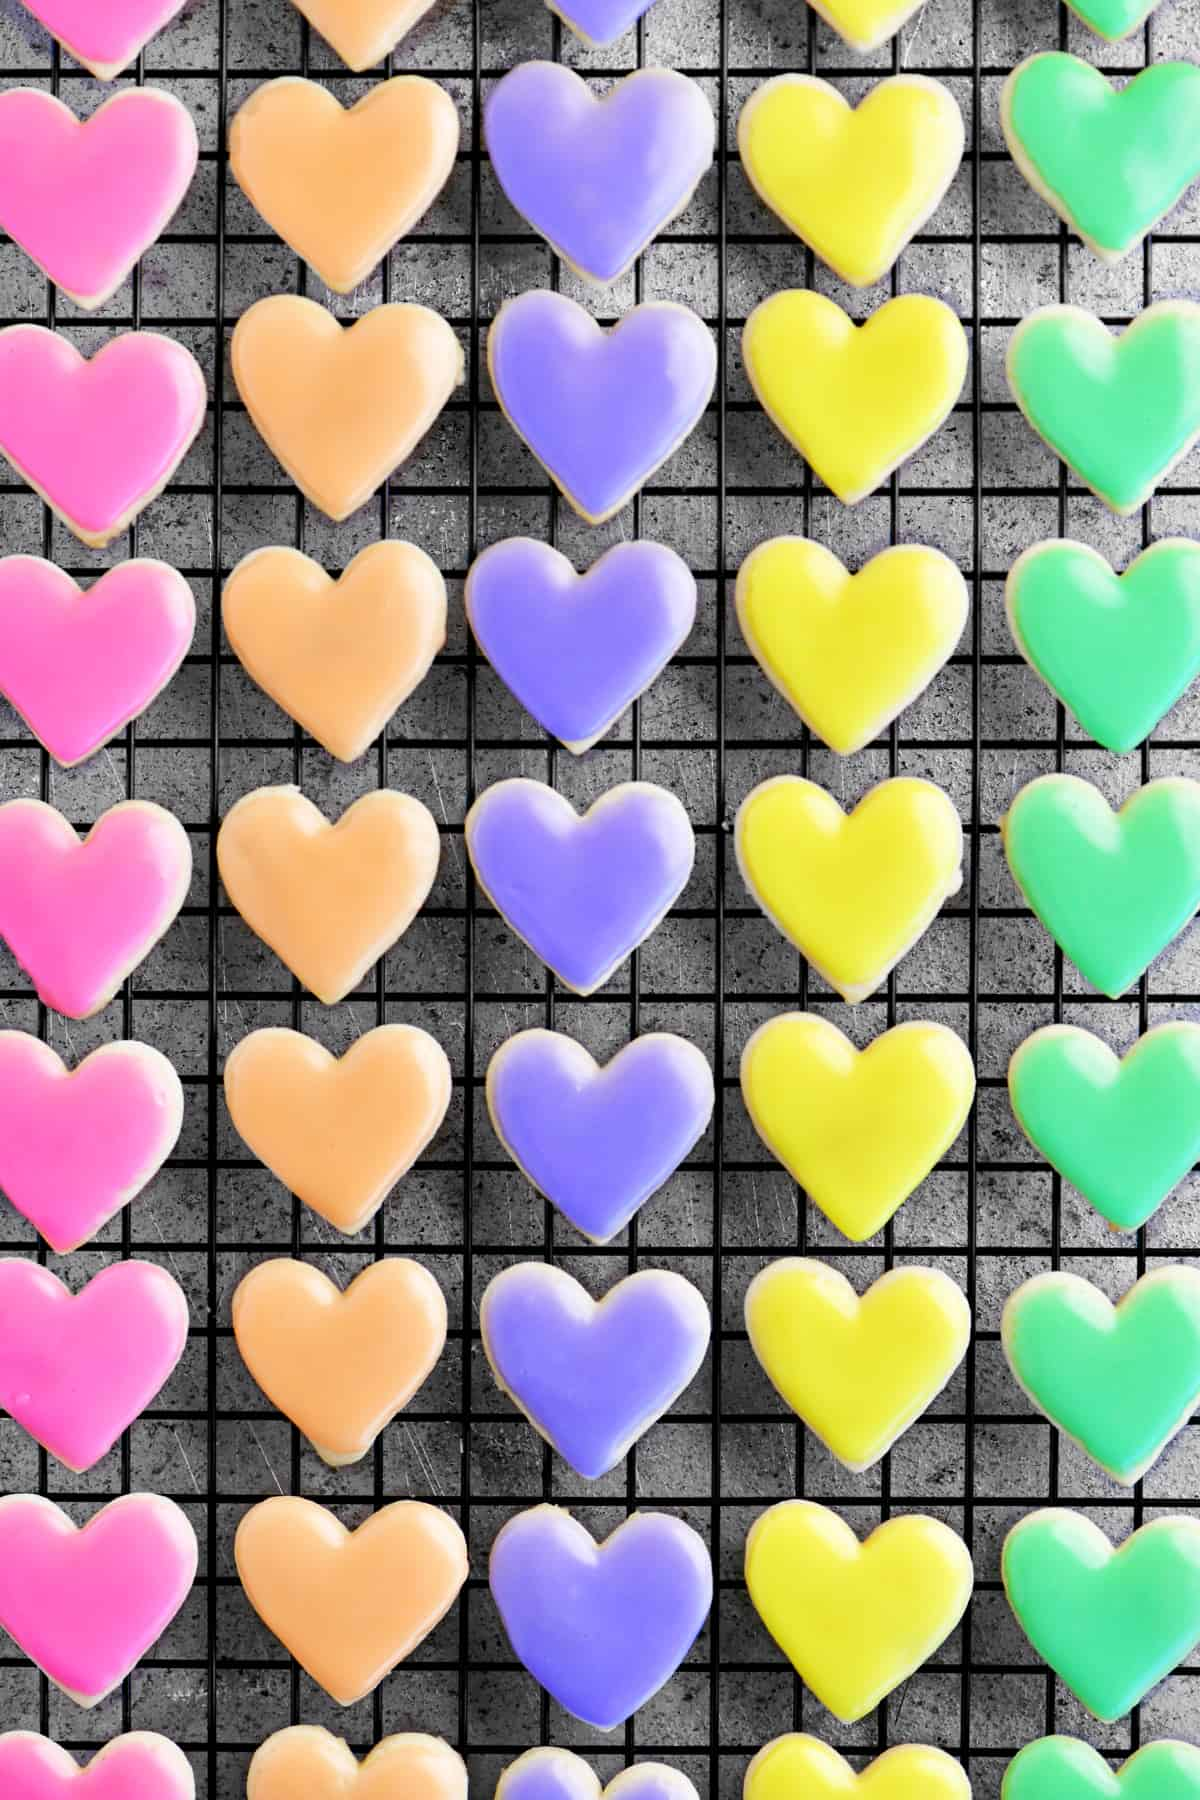 rows of colorful iced heart shaped sugar cookies